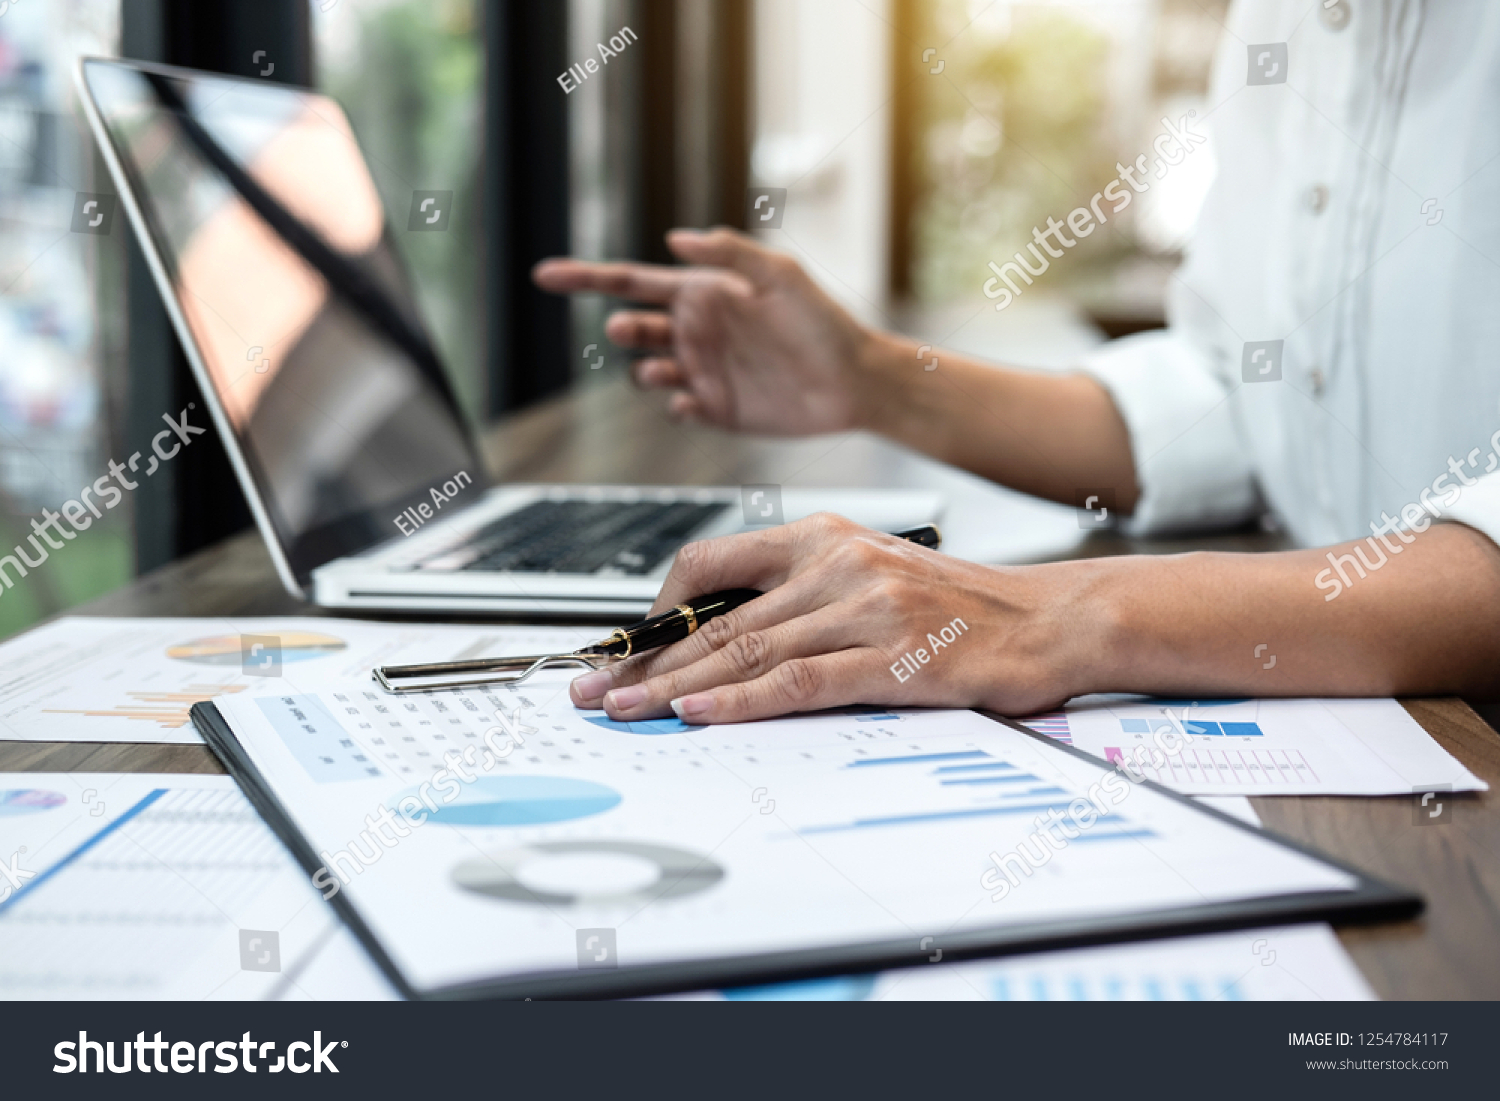 Business woman accountant working audit and calculating expense financial annual financial report balance sheet statement, doing finance making notes on paper checking document. #1254784117